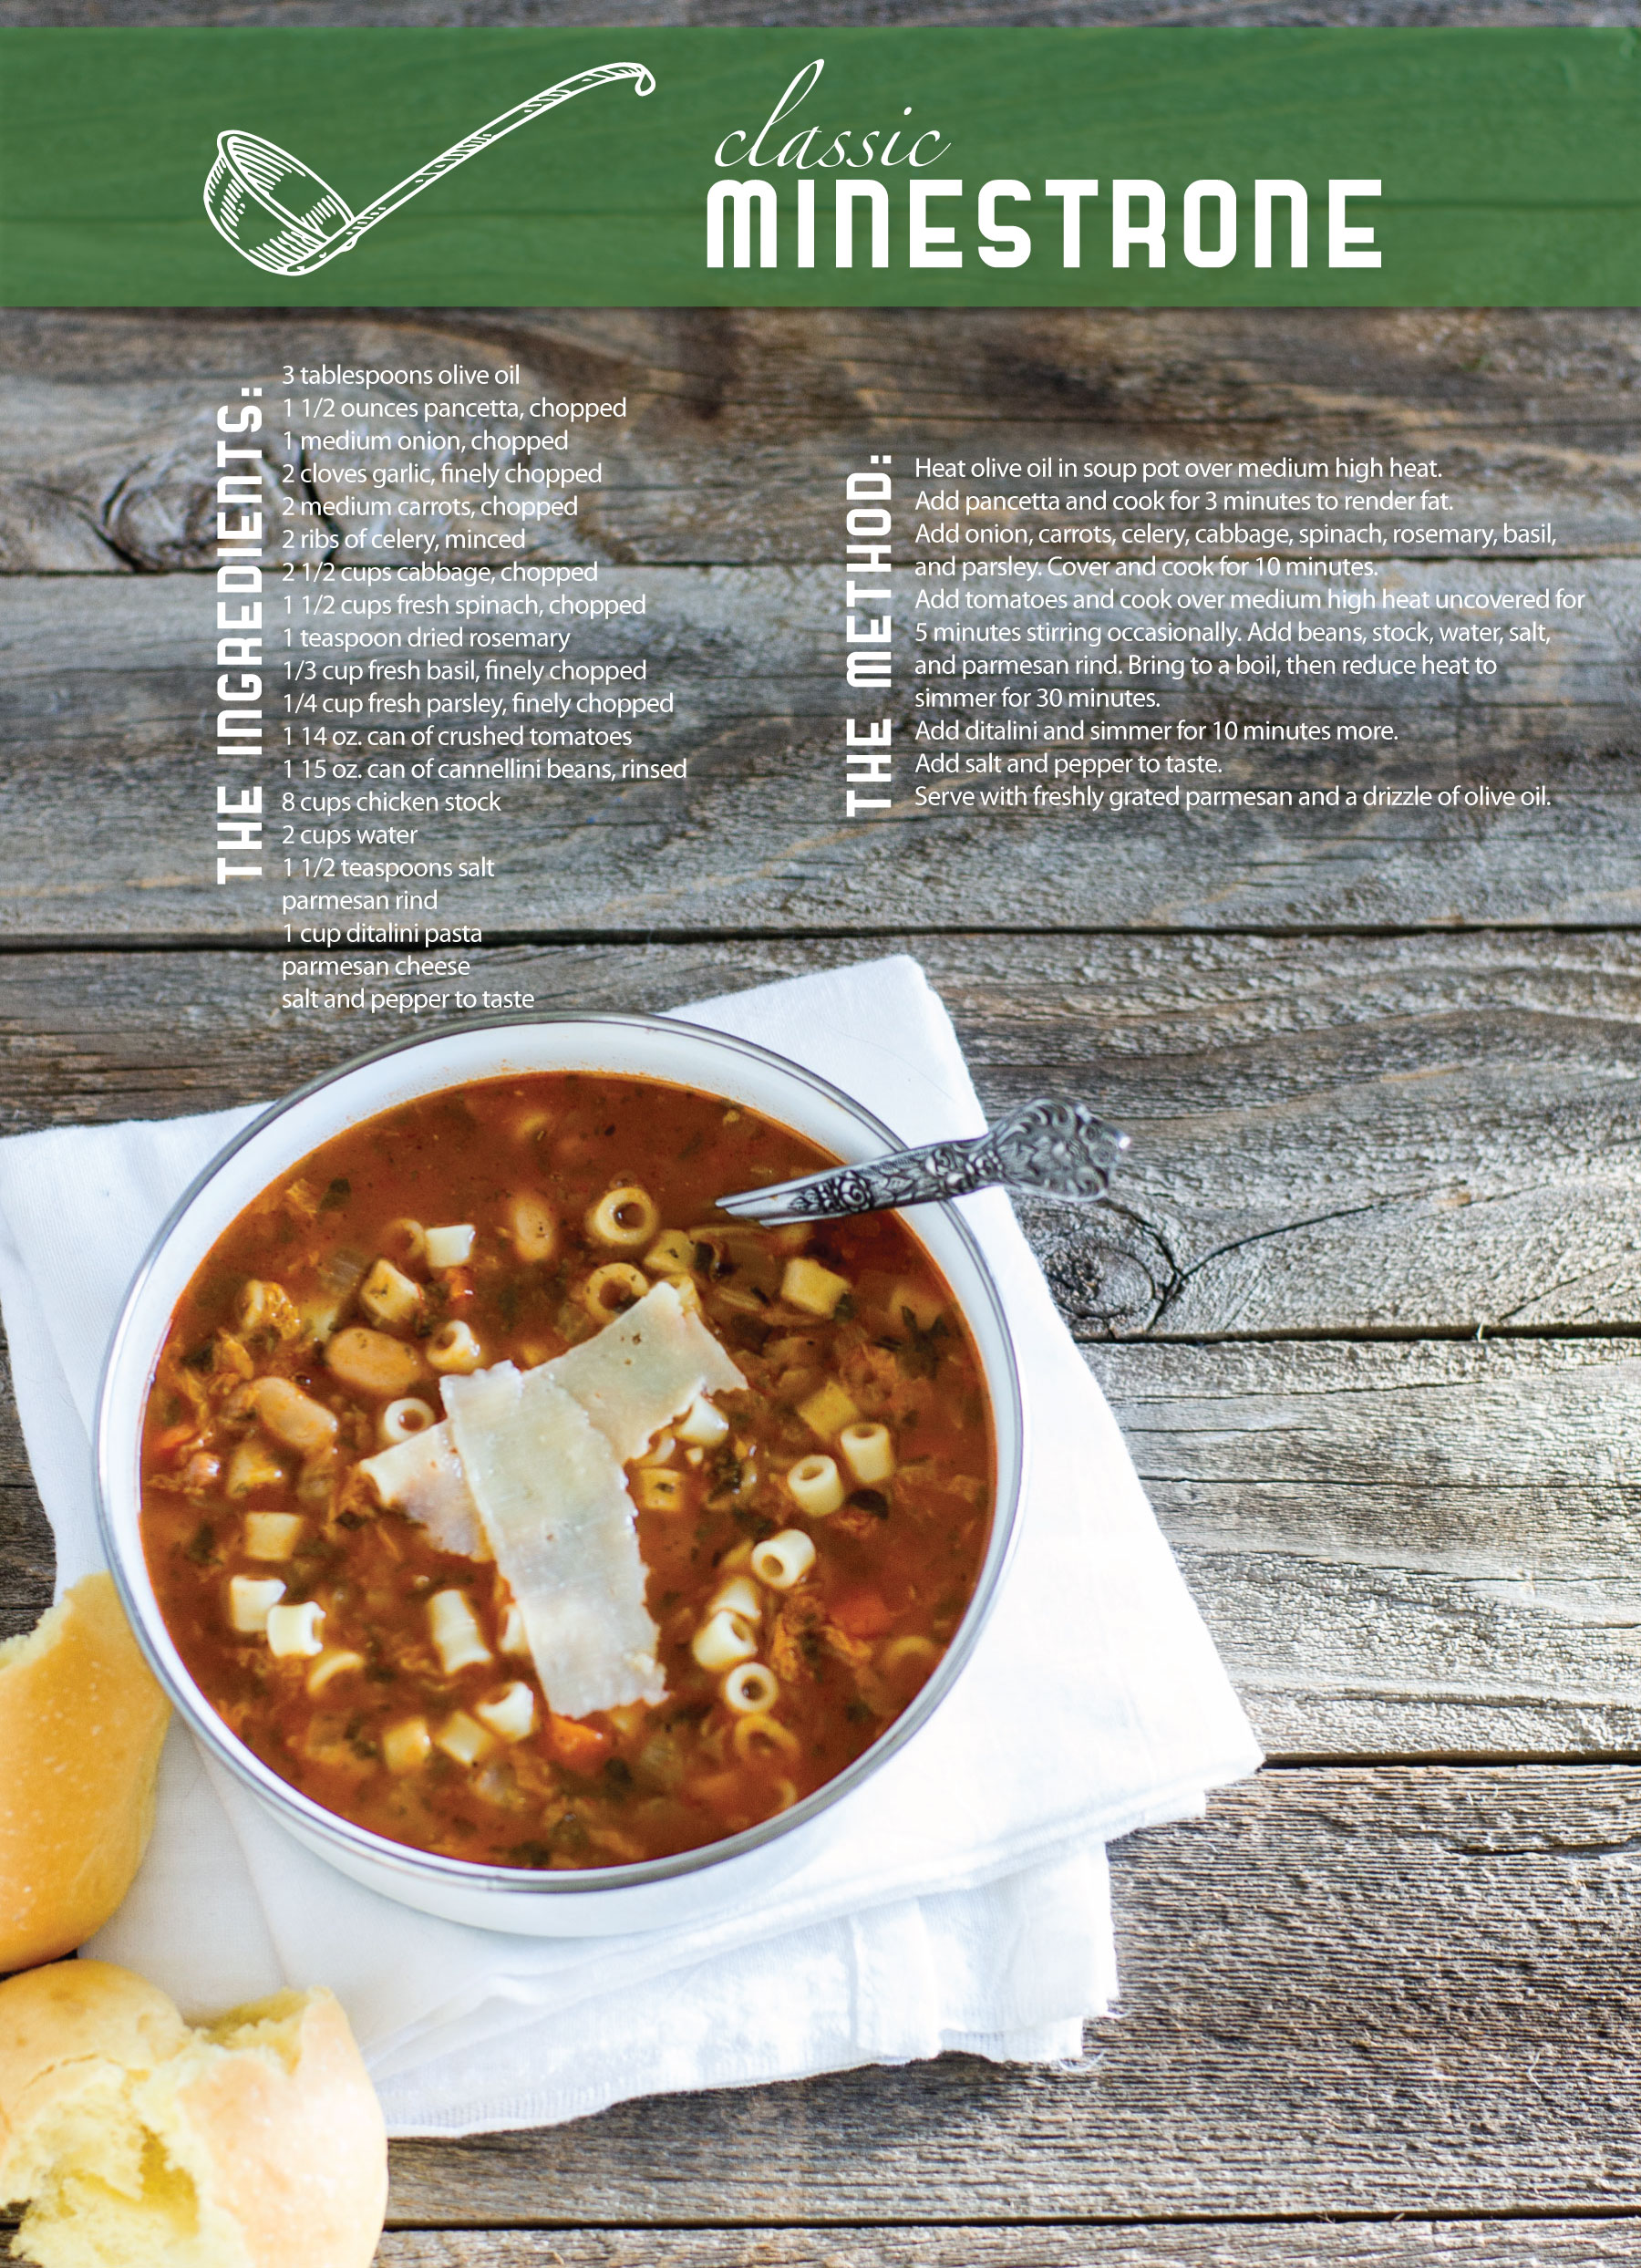 Classic MInestrone by Sam Henderson of Today's Nest